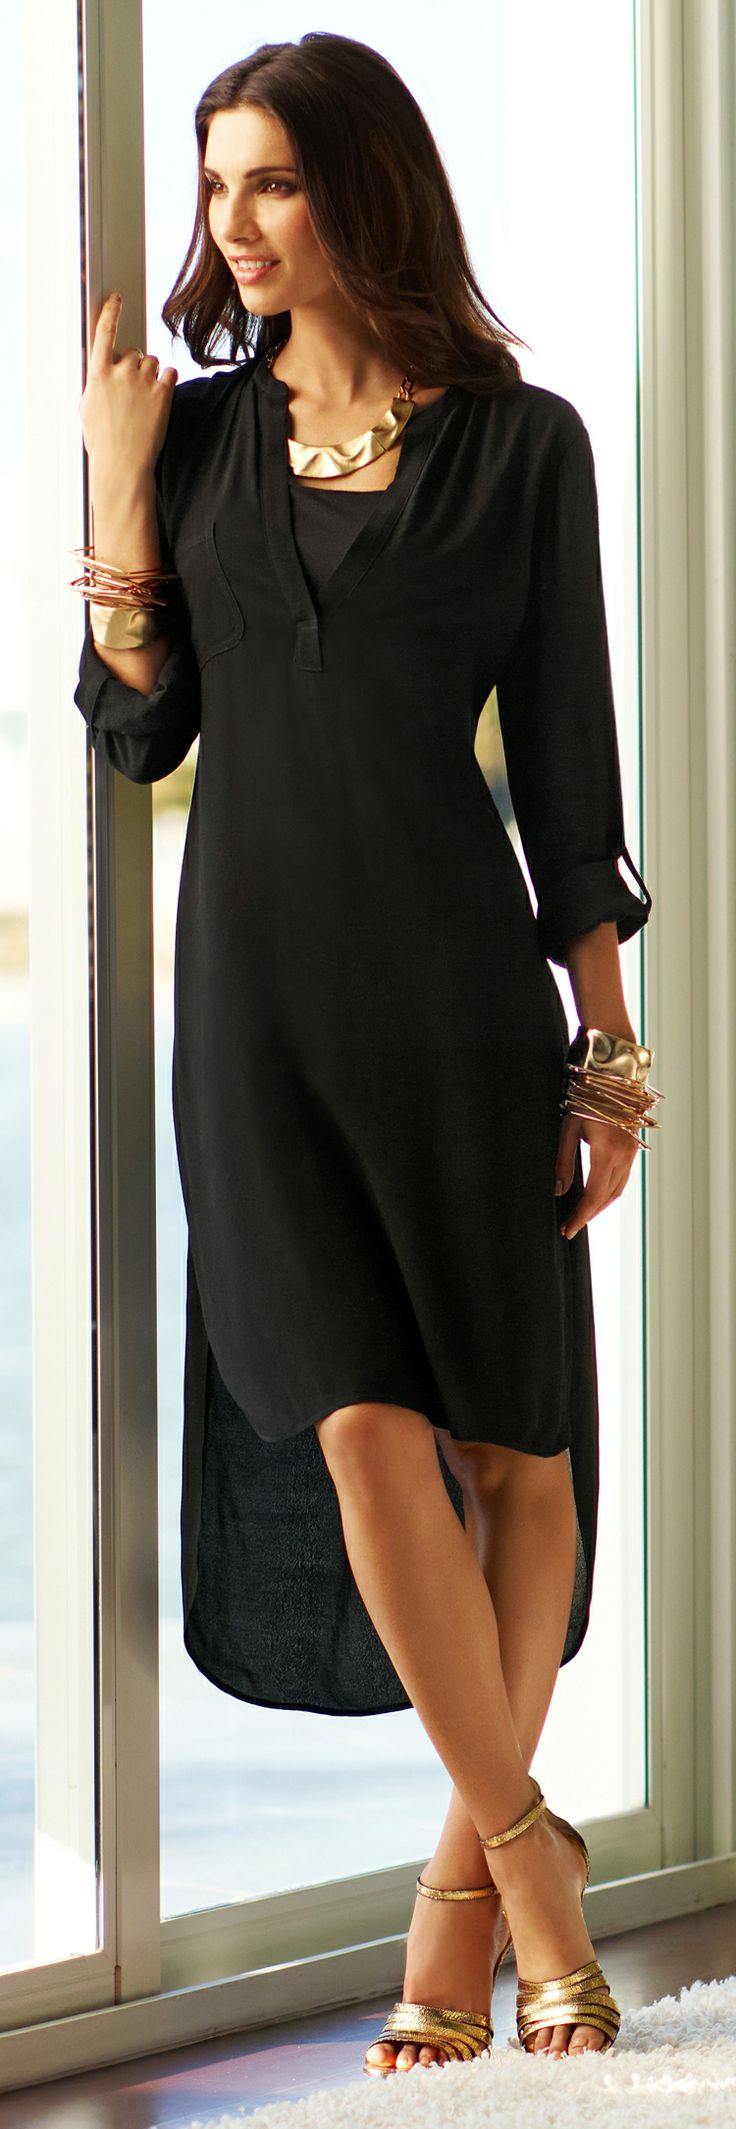 Fade to black: Spring's latest take on the LBD. Relaxed but elegant... I'm trying to decide if I like this trend... This dress